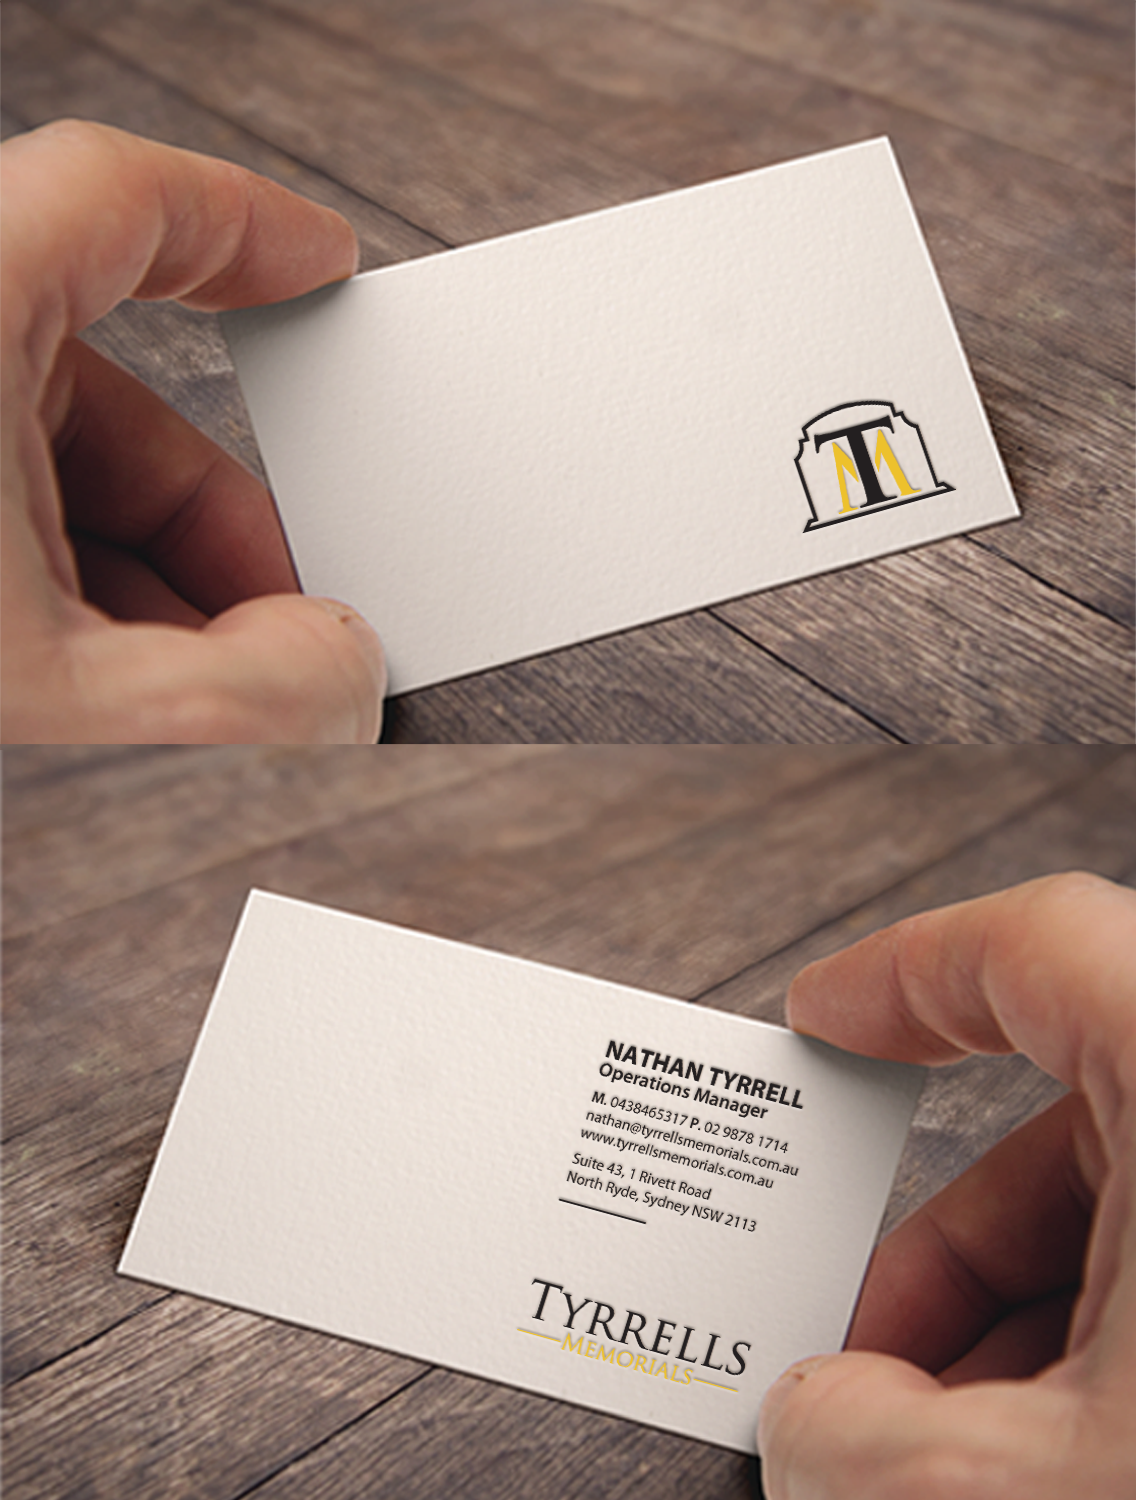 Serious professional business business card design for tyrrells business card design by chandrayaaneative for tyrrells memorials design 12677203 reheart Image collections